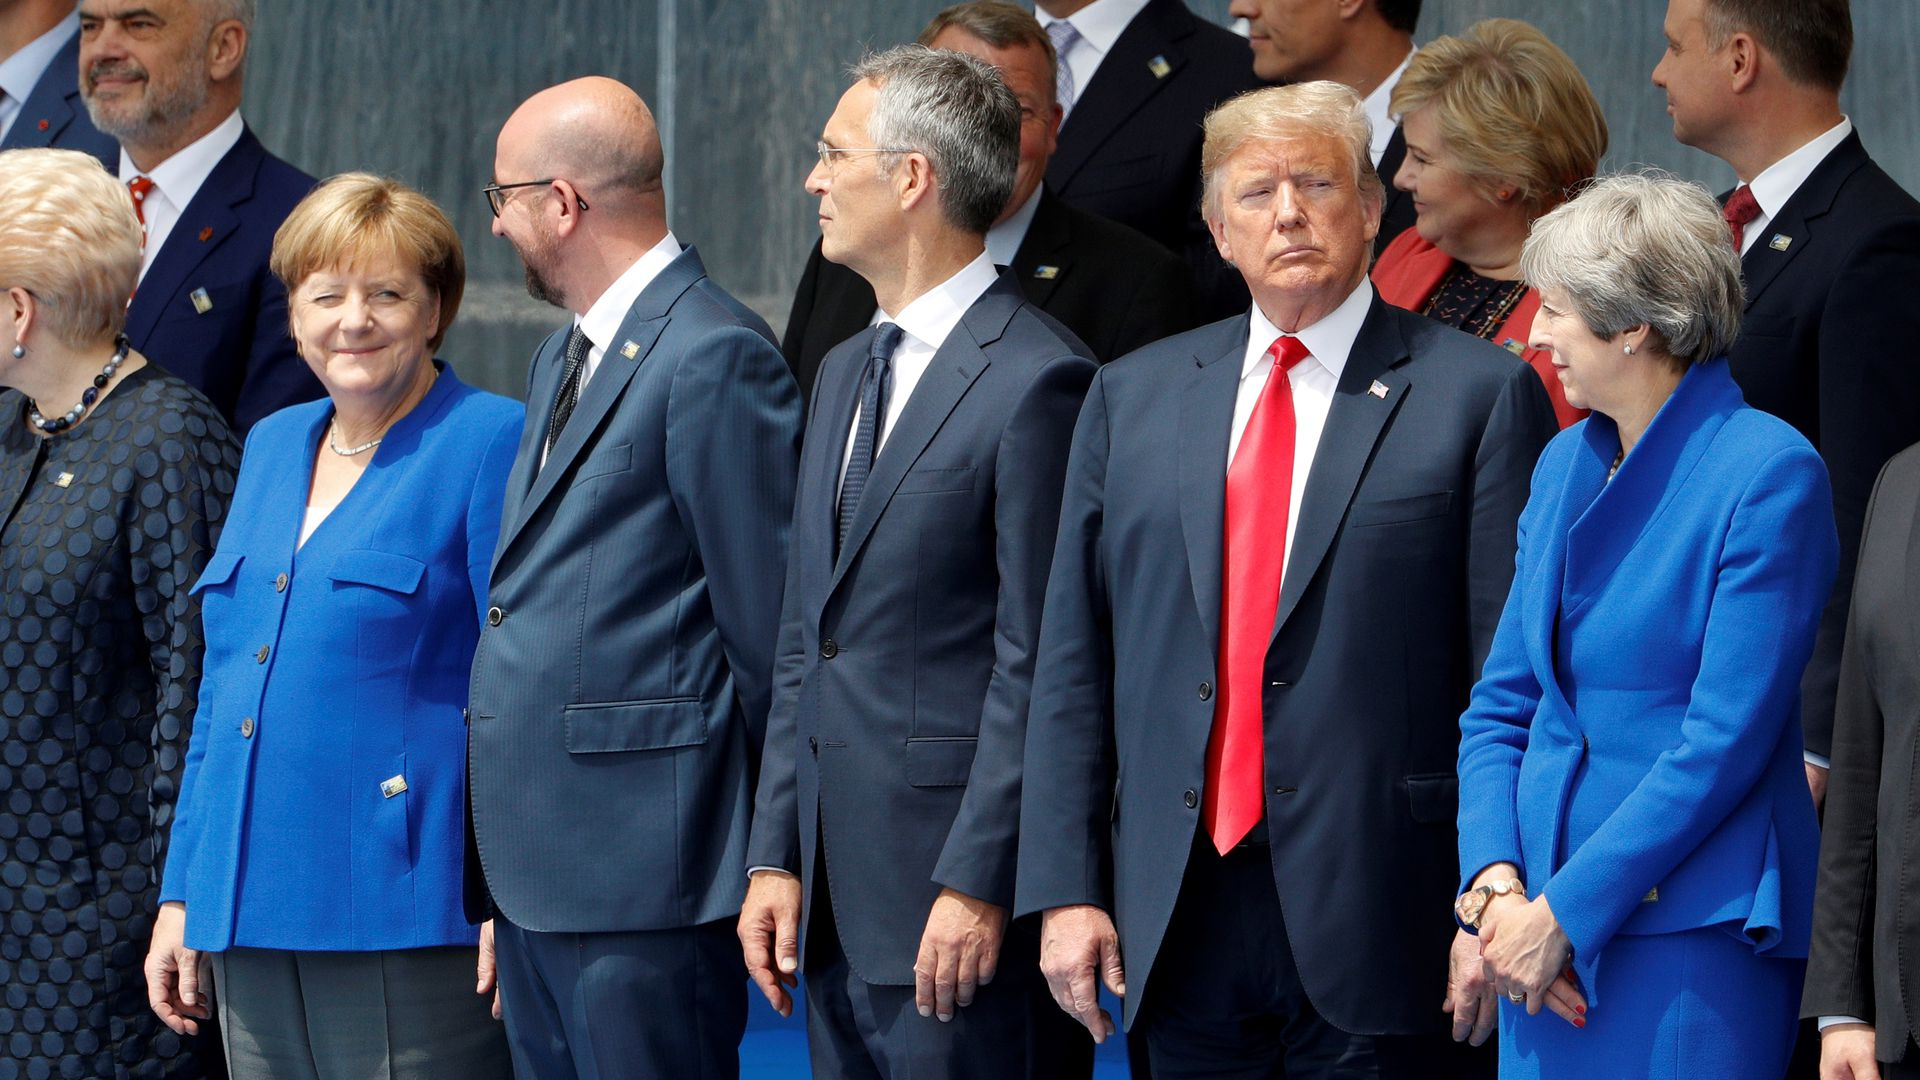 Trump stands in line with other NATO leaders